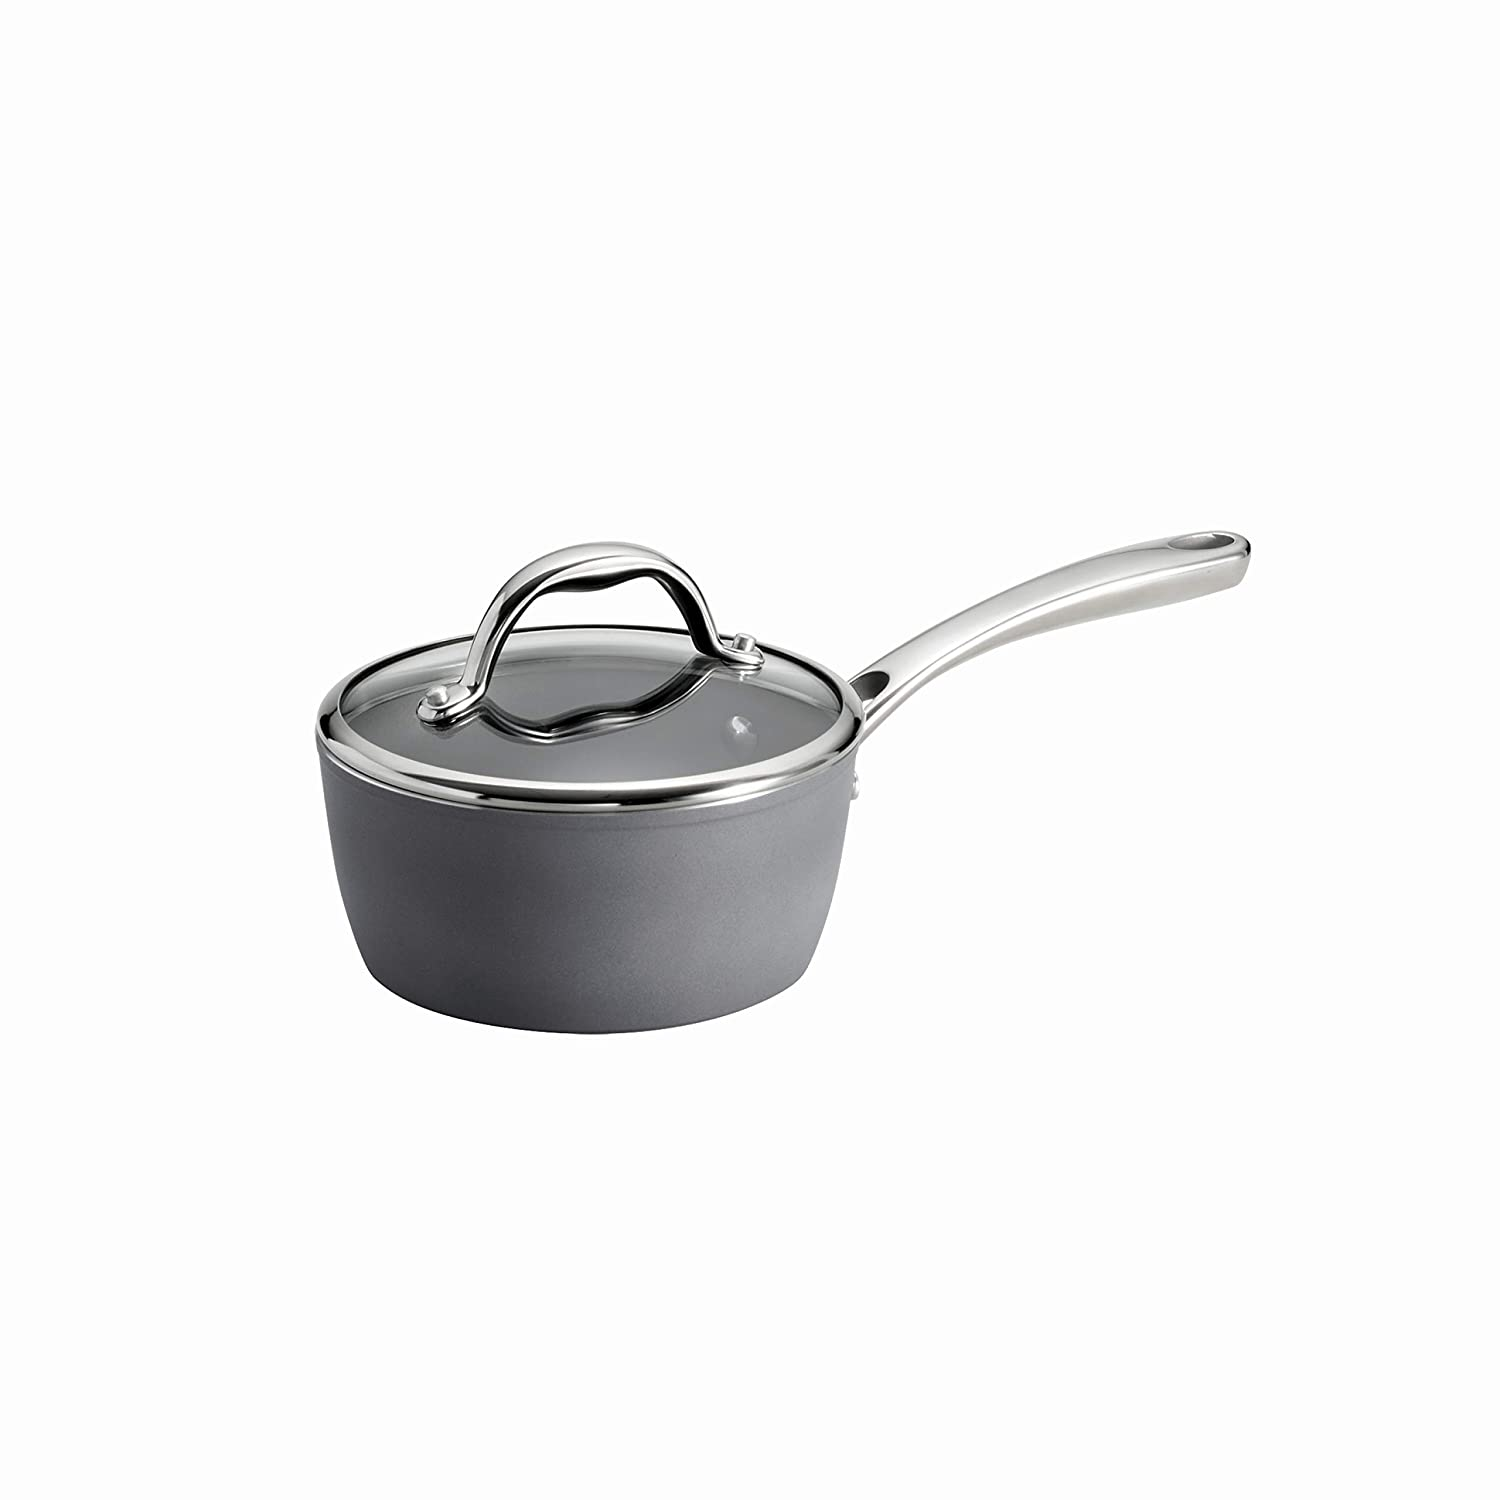 Tramontina 80110/098DS Gourmet Induction Aluminum Nonstick Covered, Made in Italy 1.5-Quart Sauce Pan, Slate Gray